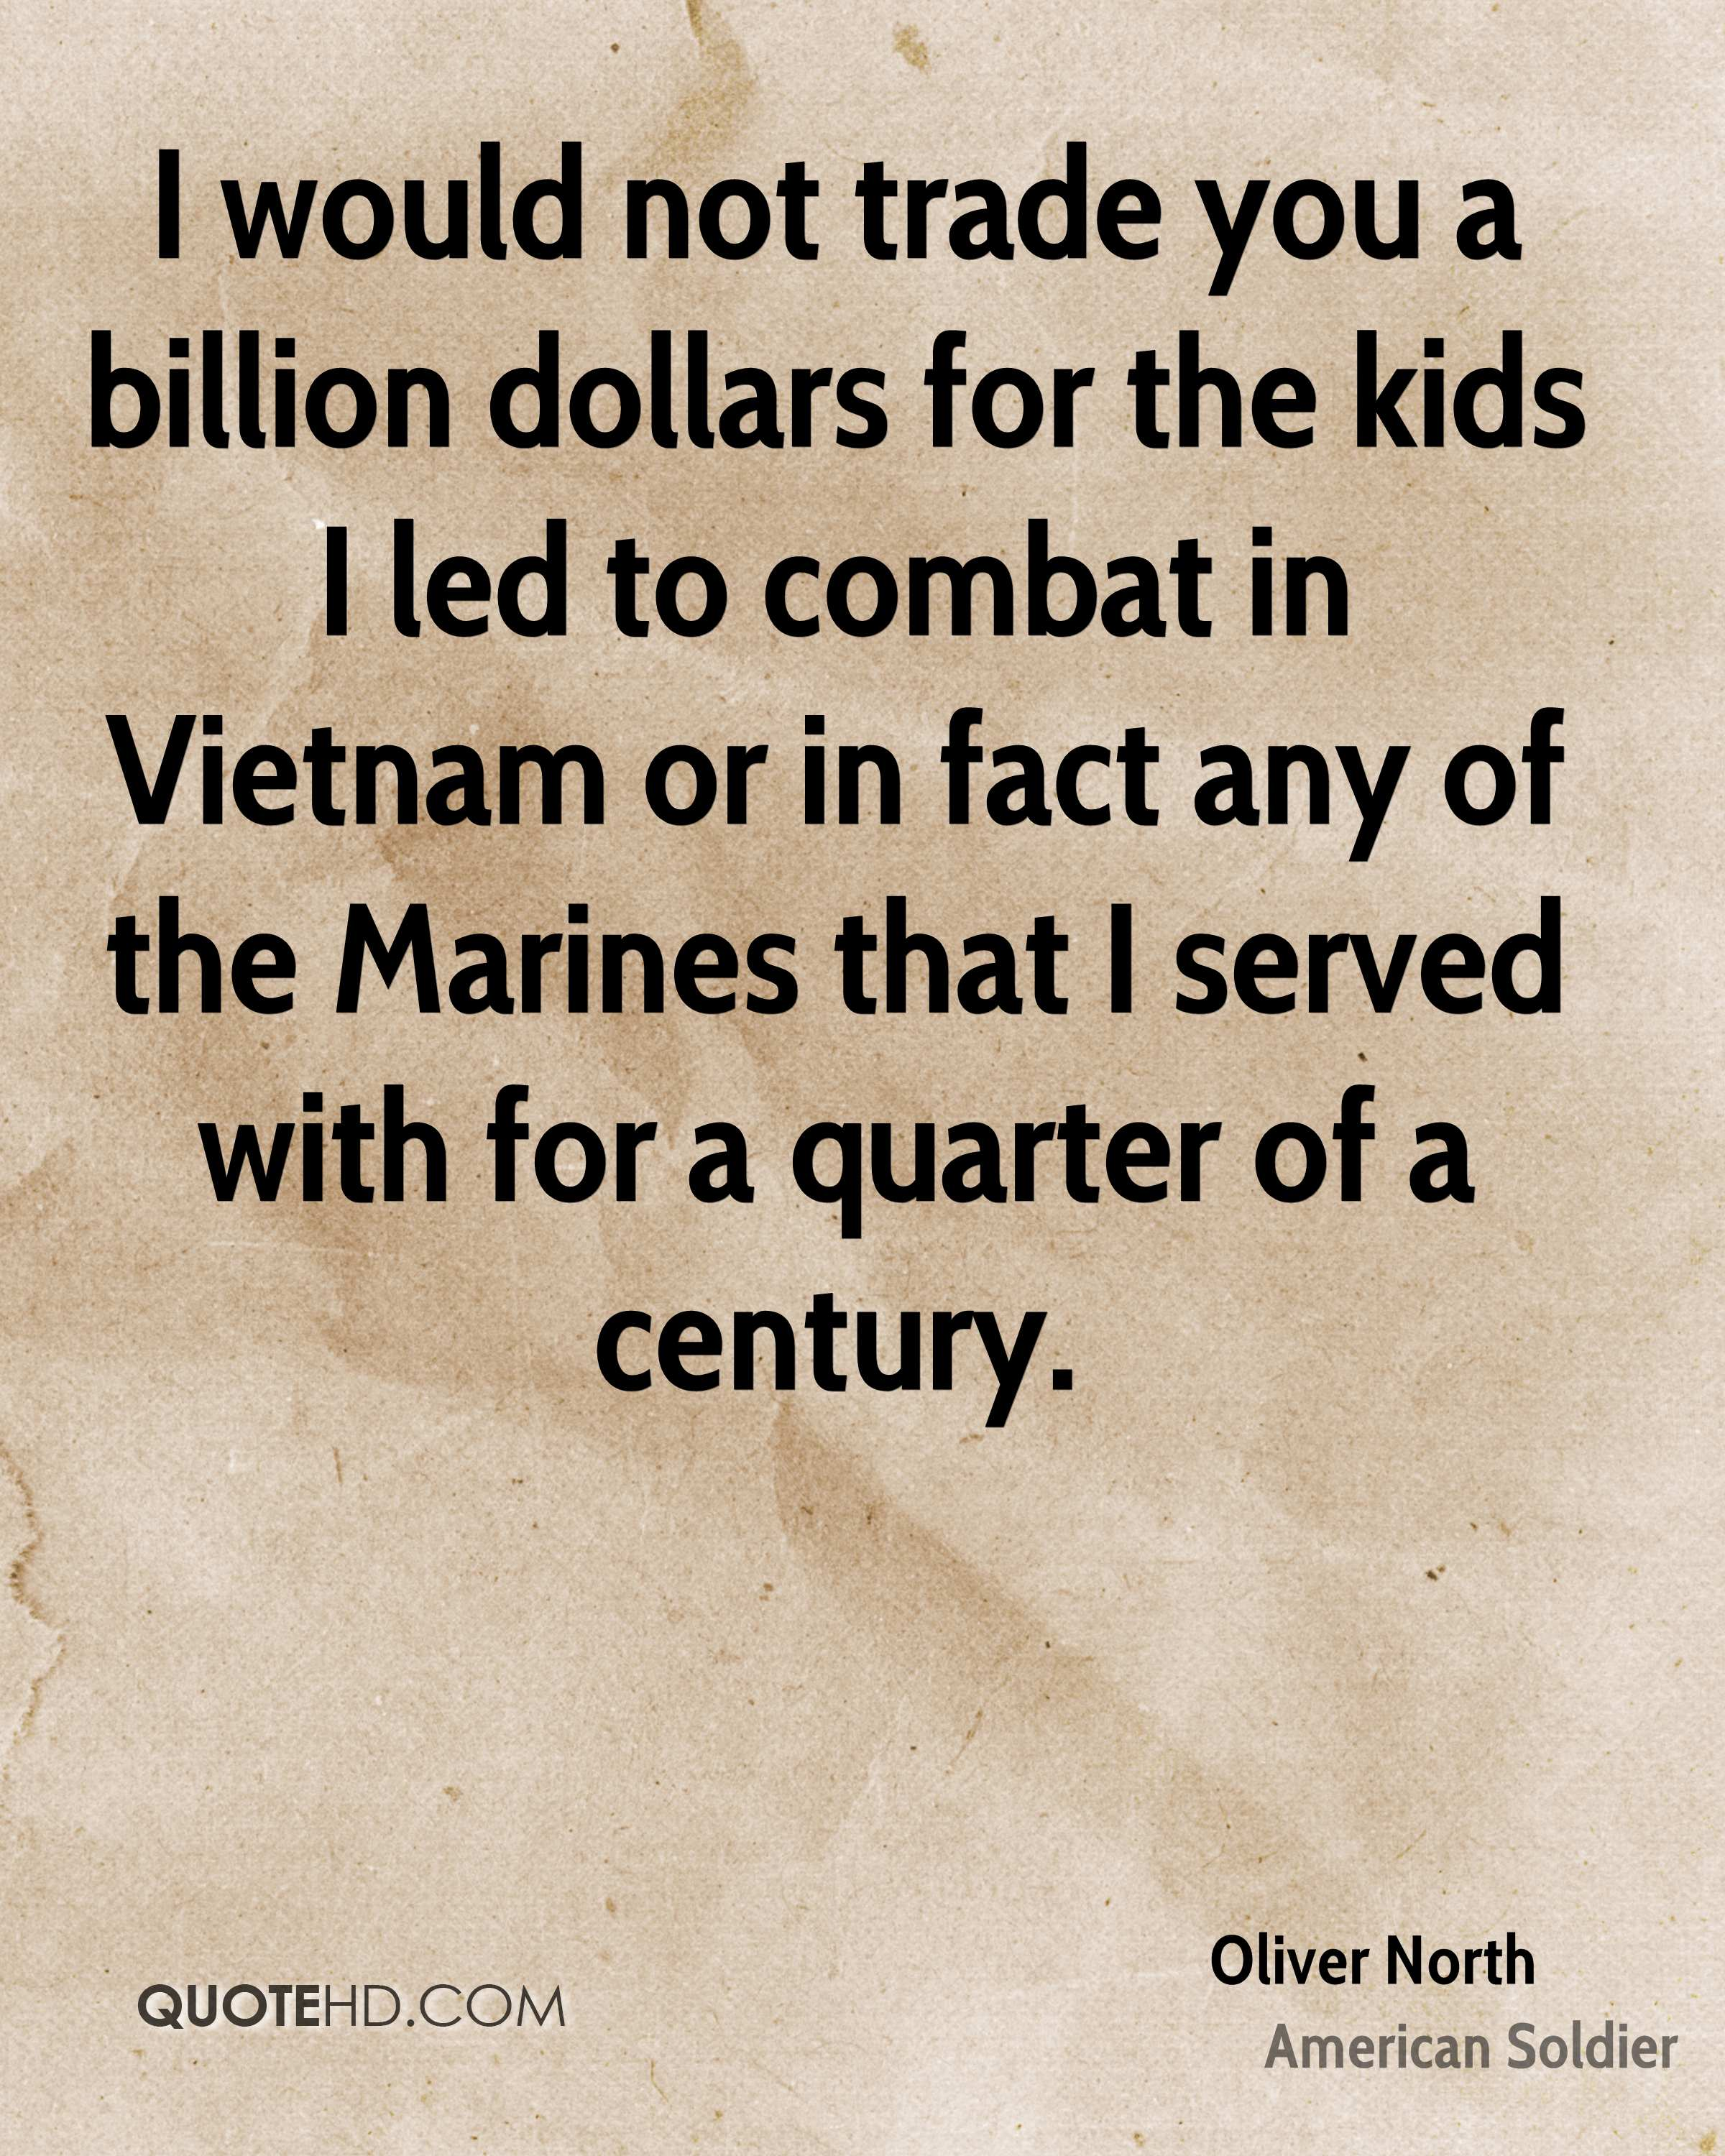 I would not trade you a billion dollars for the kids I led to combat in Vietnam or in fact any of the Marines that I served with for a quarter of a century.